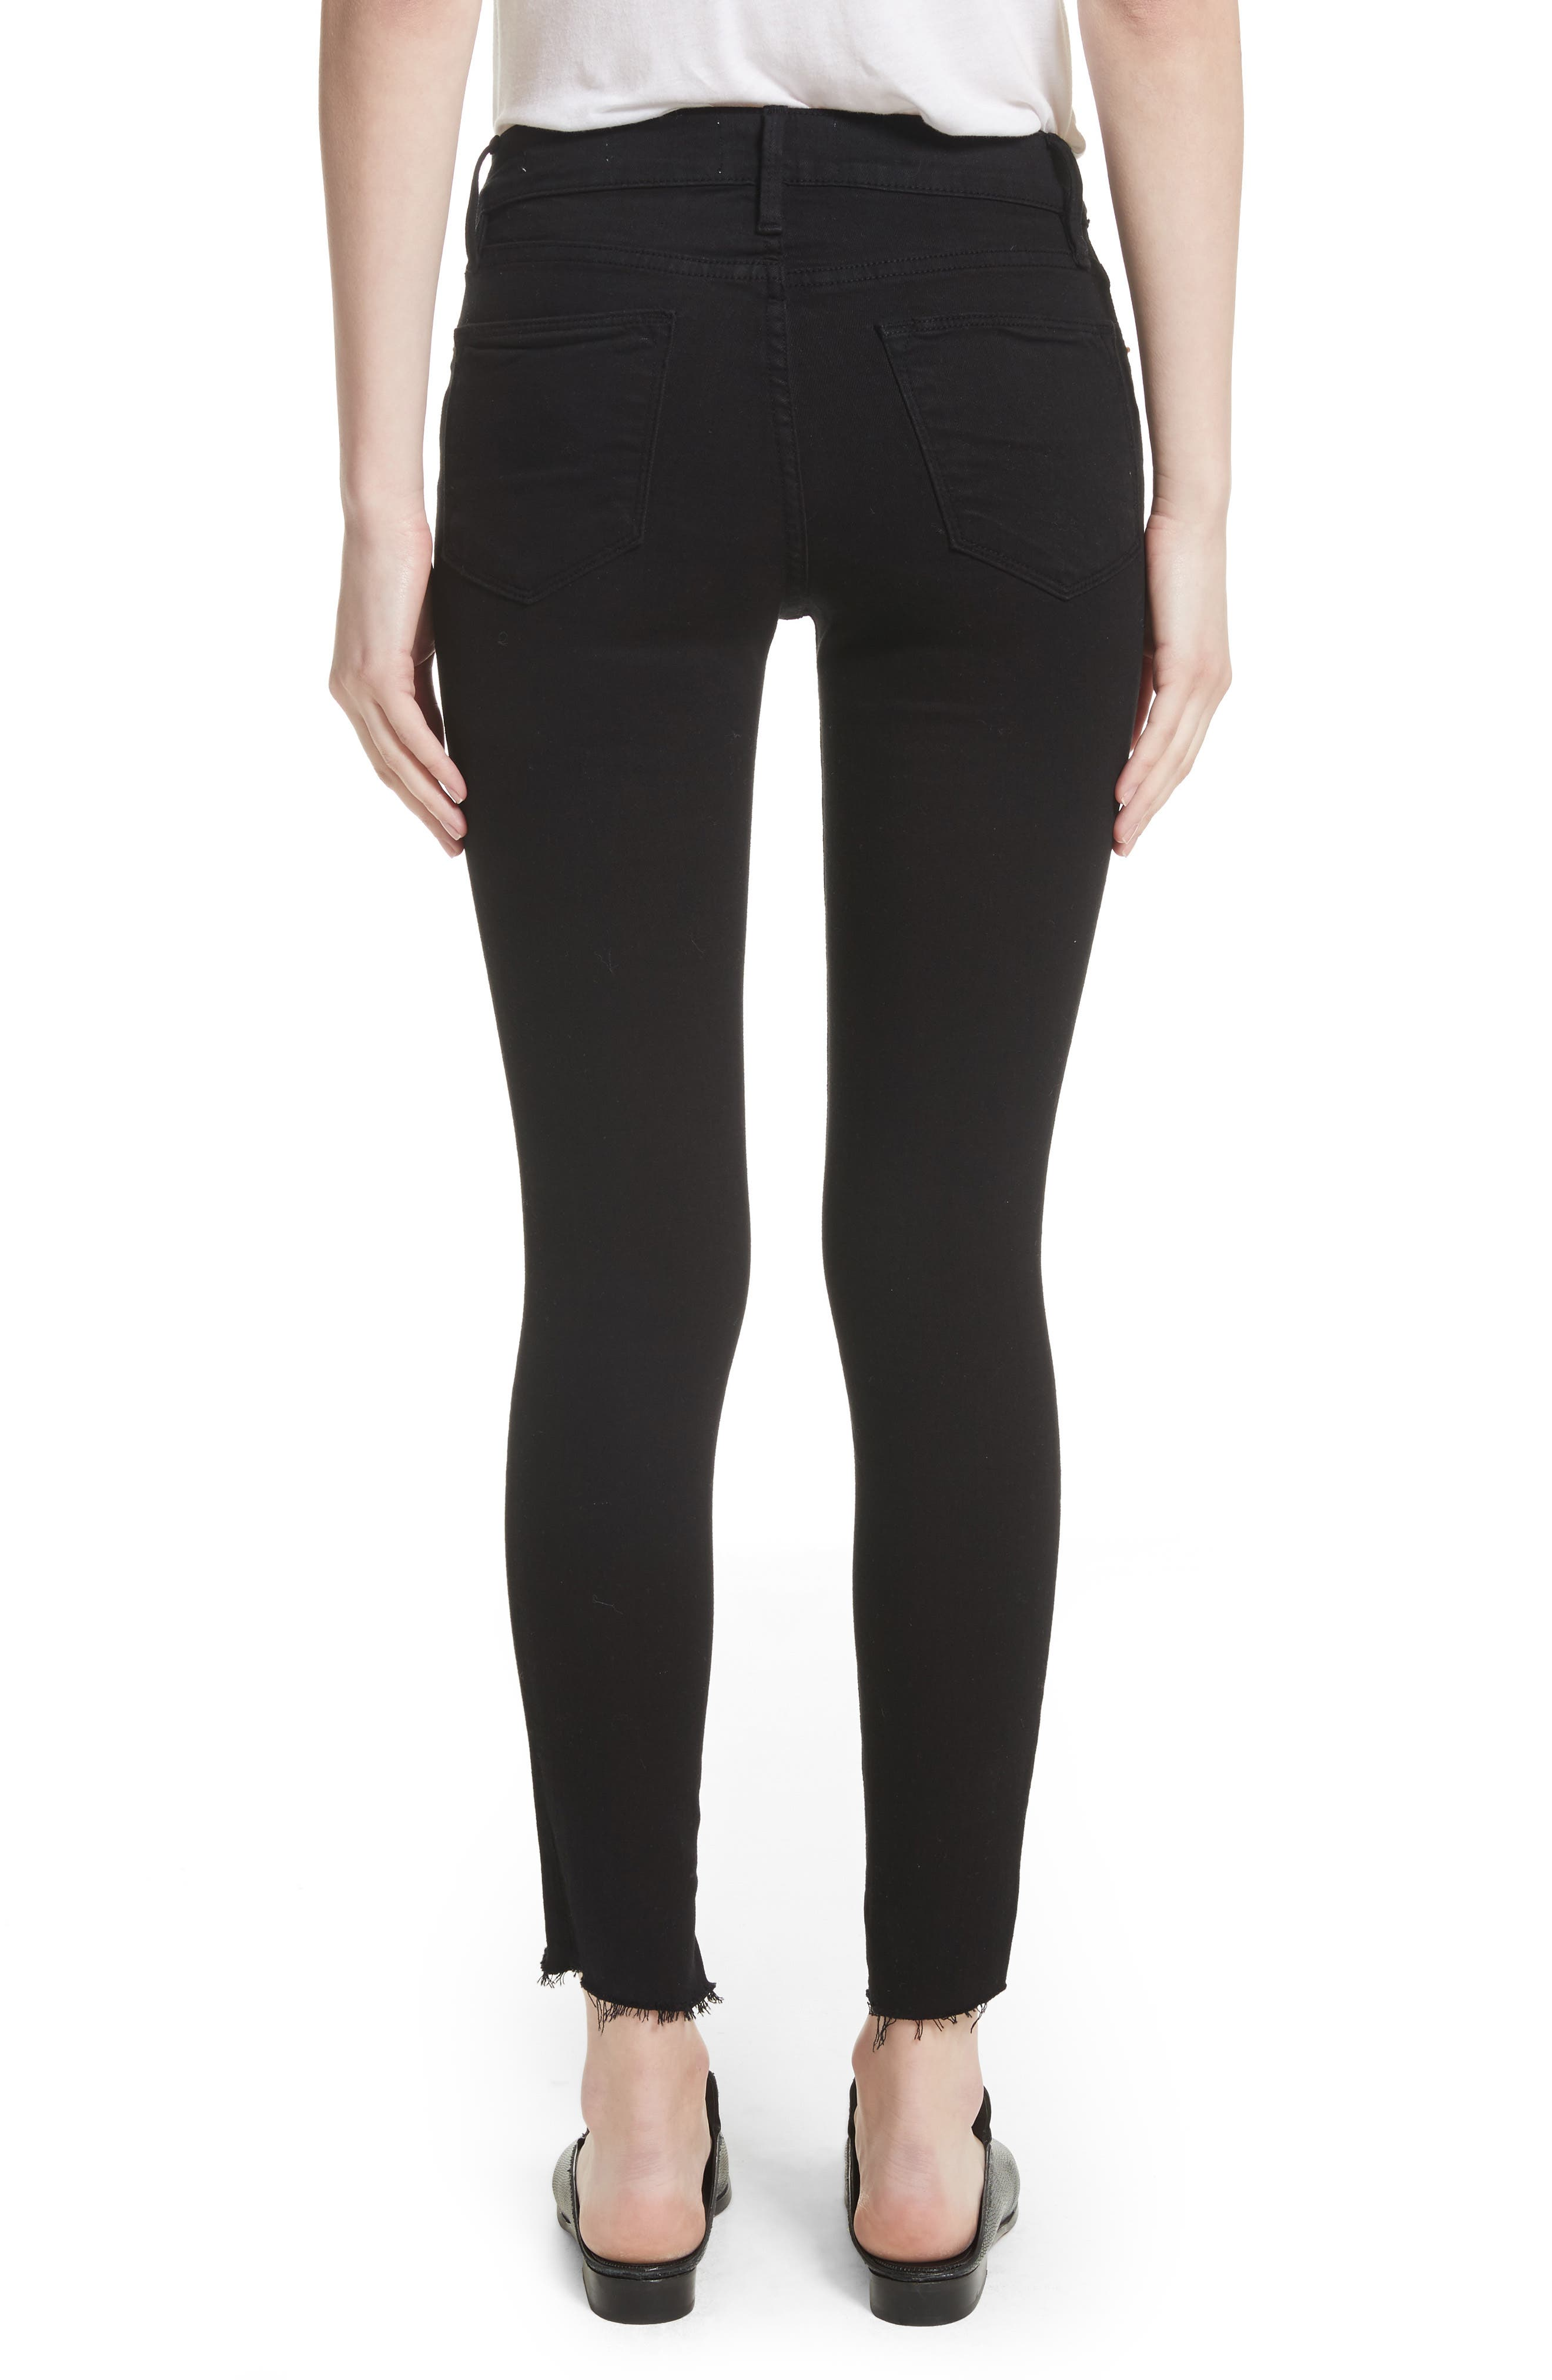 Alternate Image 3  - FRAME Le High Skinny Step Hem Jeans (Film Noir) (Nordstrom Exclusive)